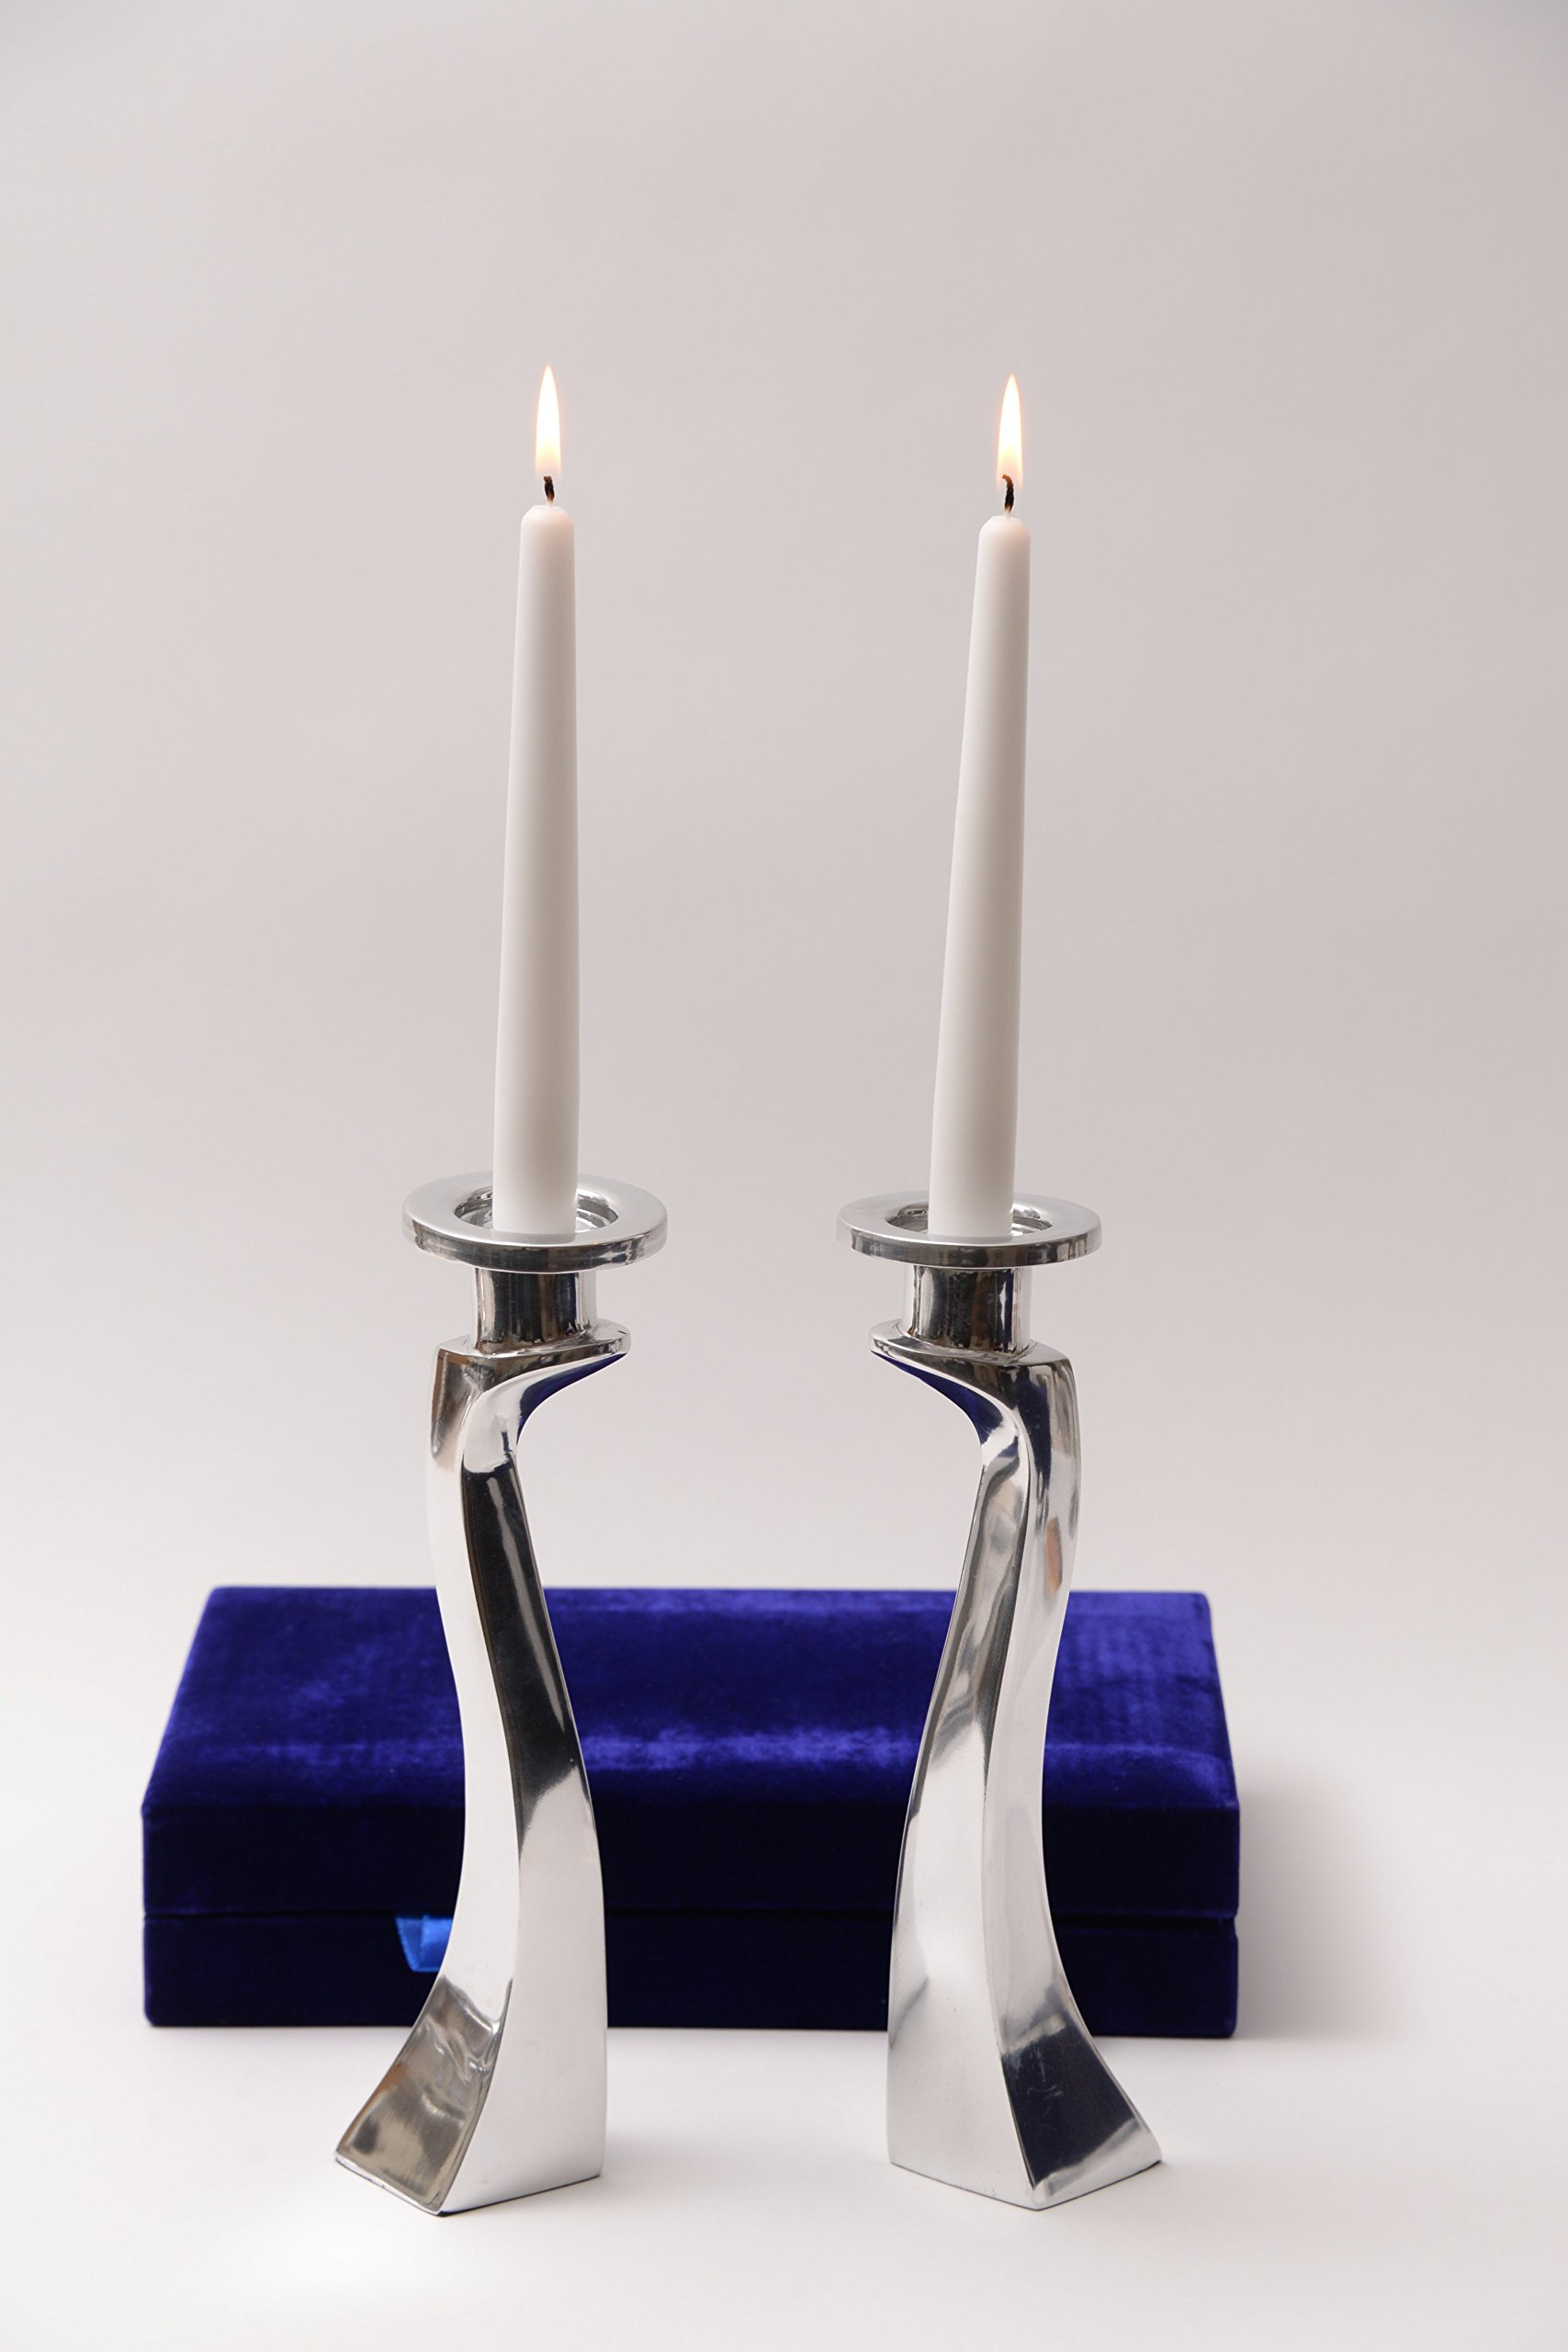 Deeper Than Regular Drip Guard Candlestick Liner Inserts by Ner Mitzvah Heavy Duty Aluminum Protector Bobeches 40 Count Candle Holders Plus